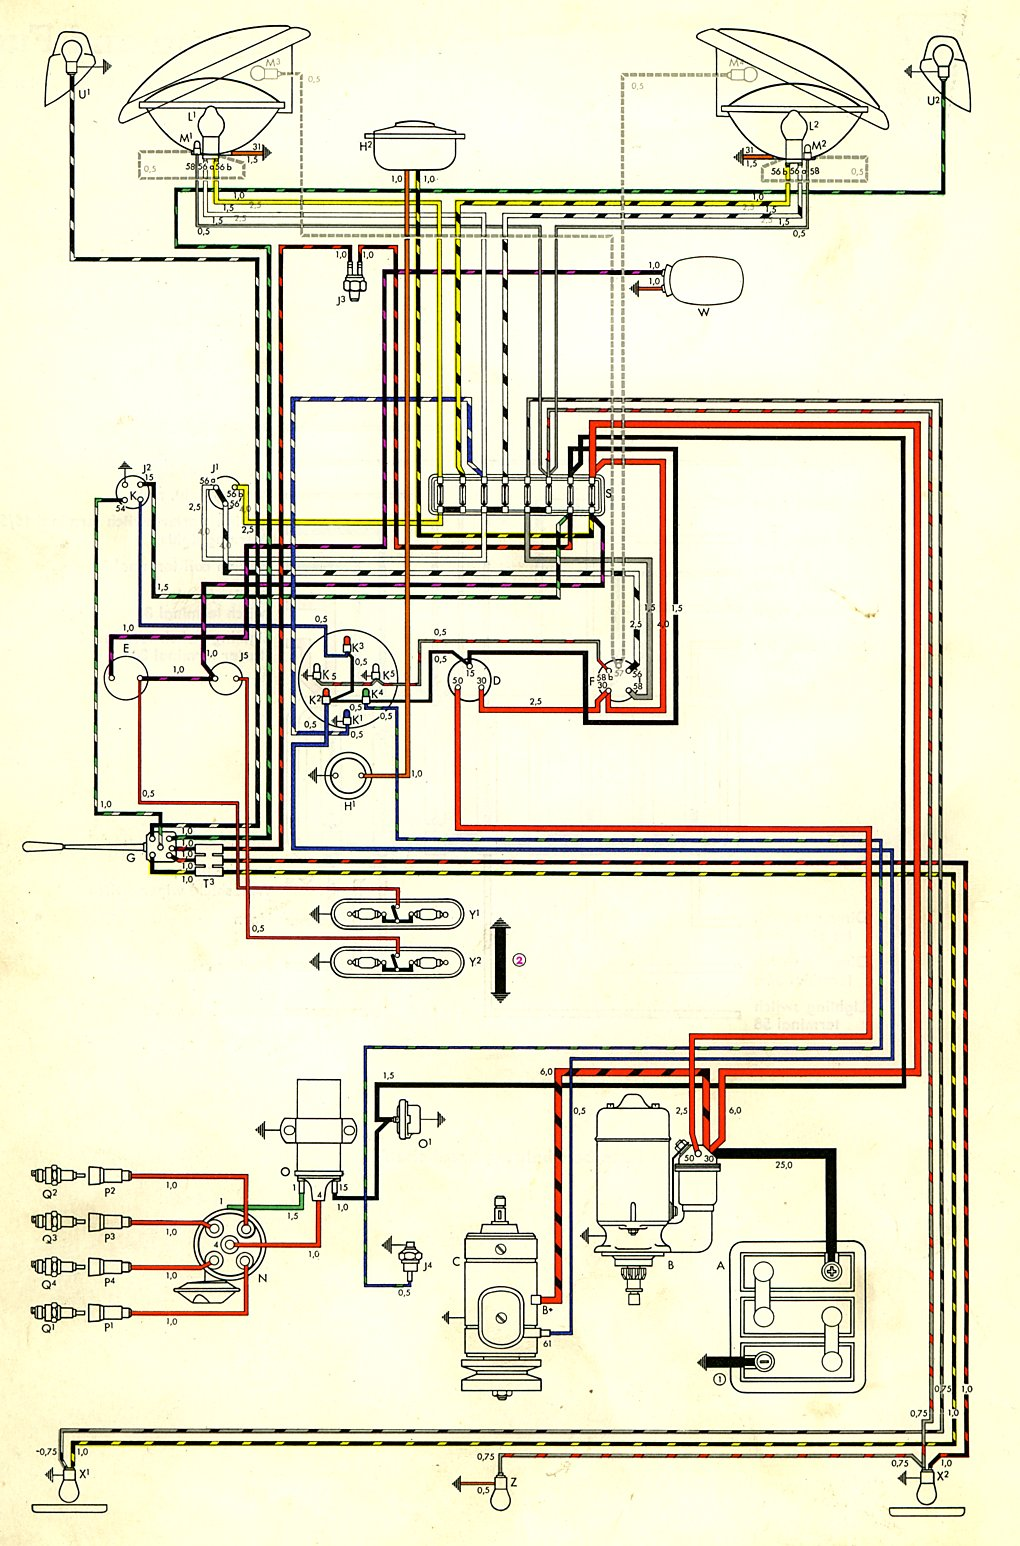 1971 Ford F250 Ignition Wiring Diagram Starting Know About 69 Vw Generator Chevy Truck Rh Prezzy Co